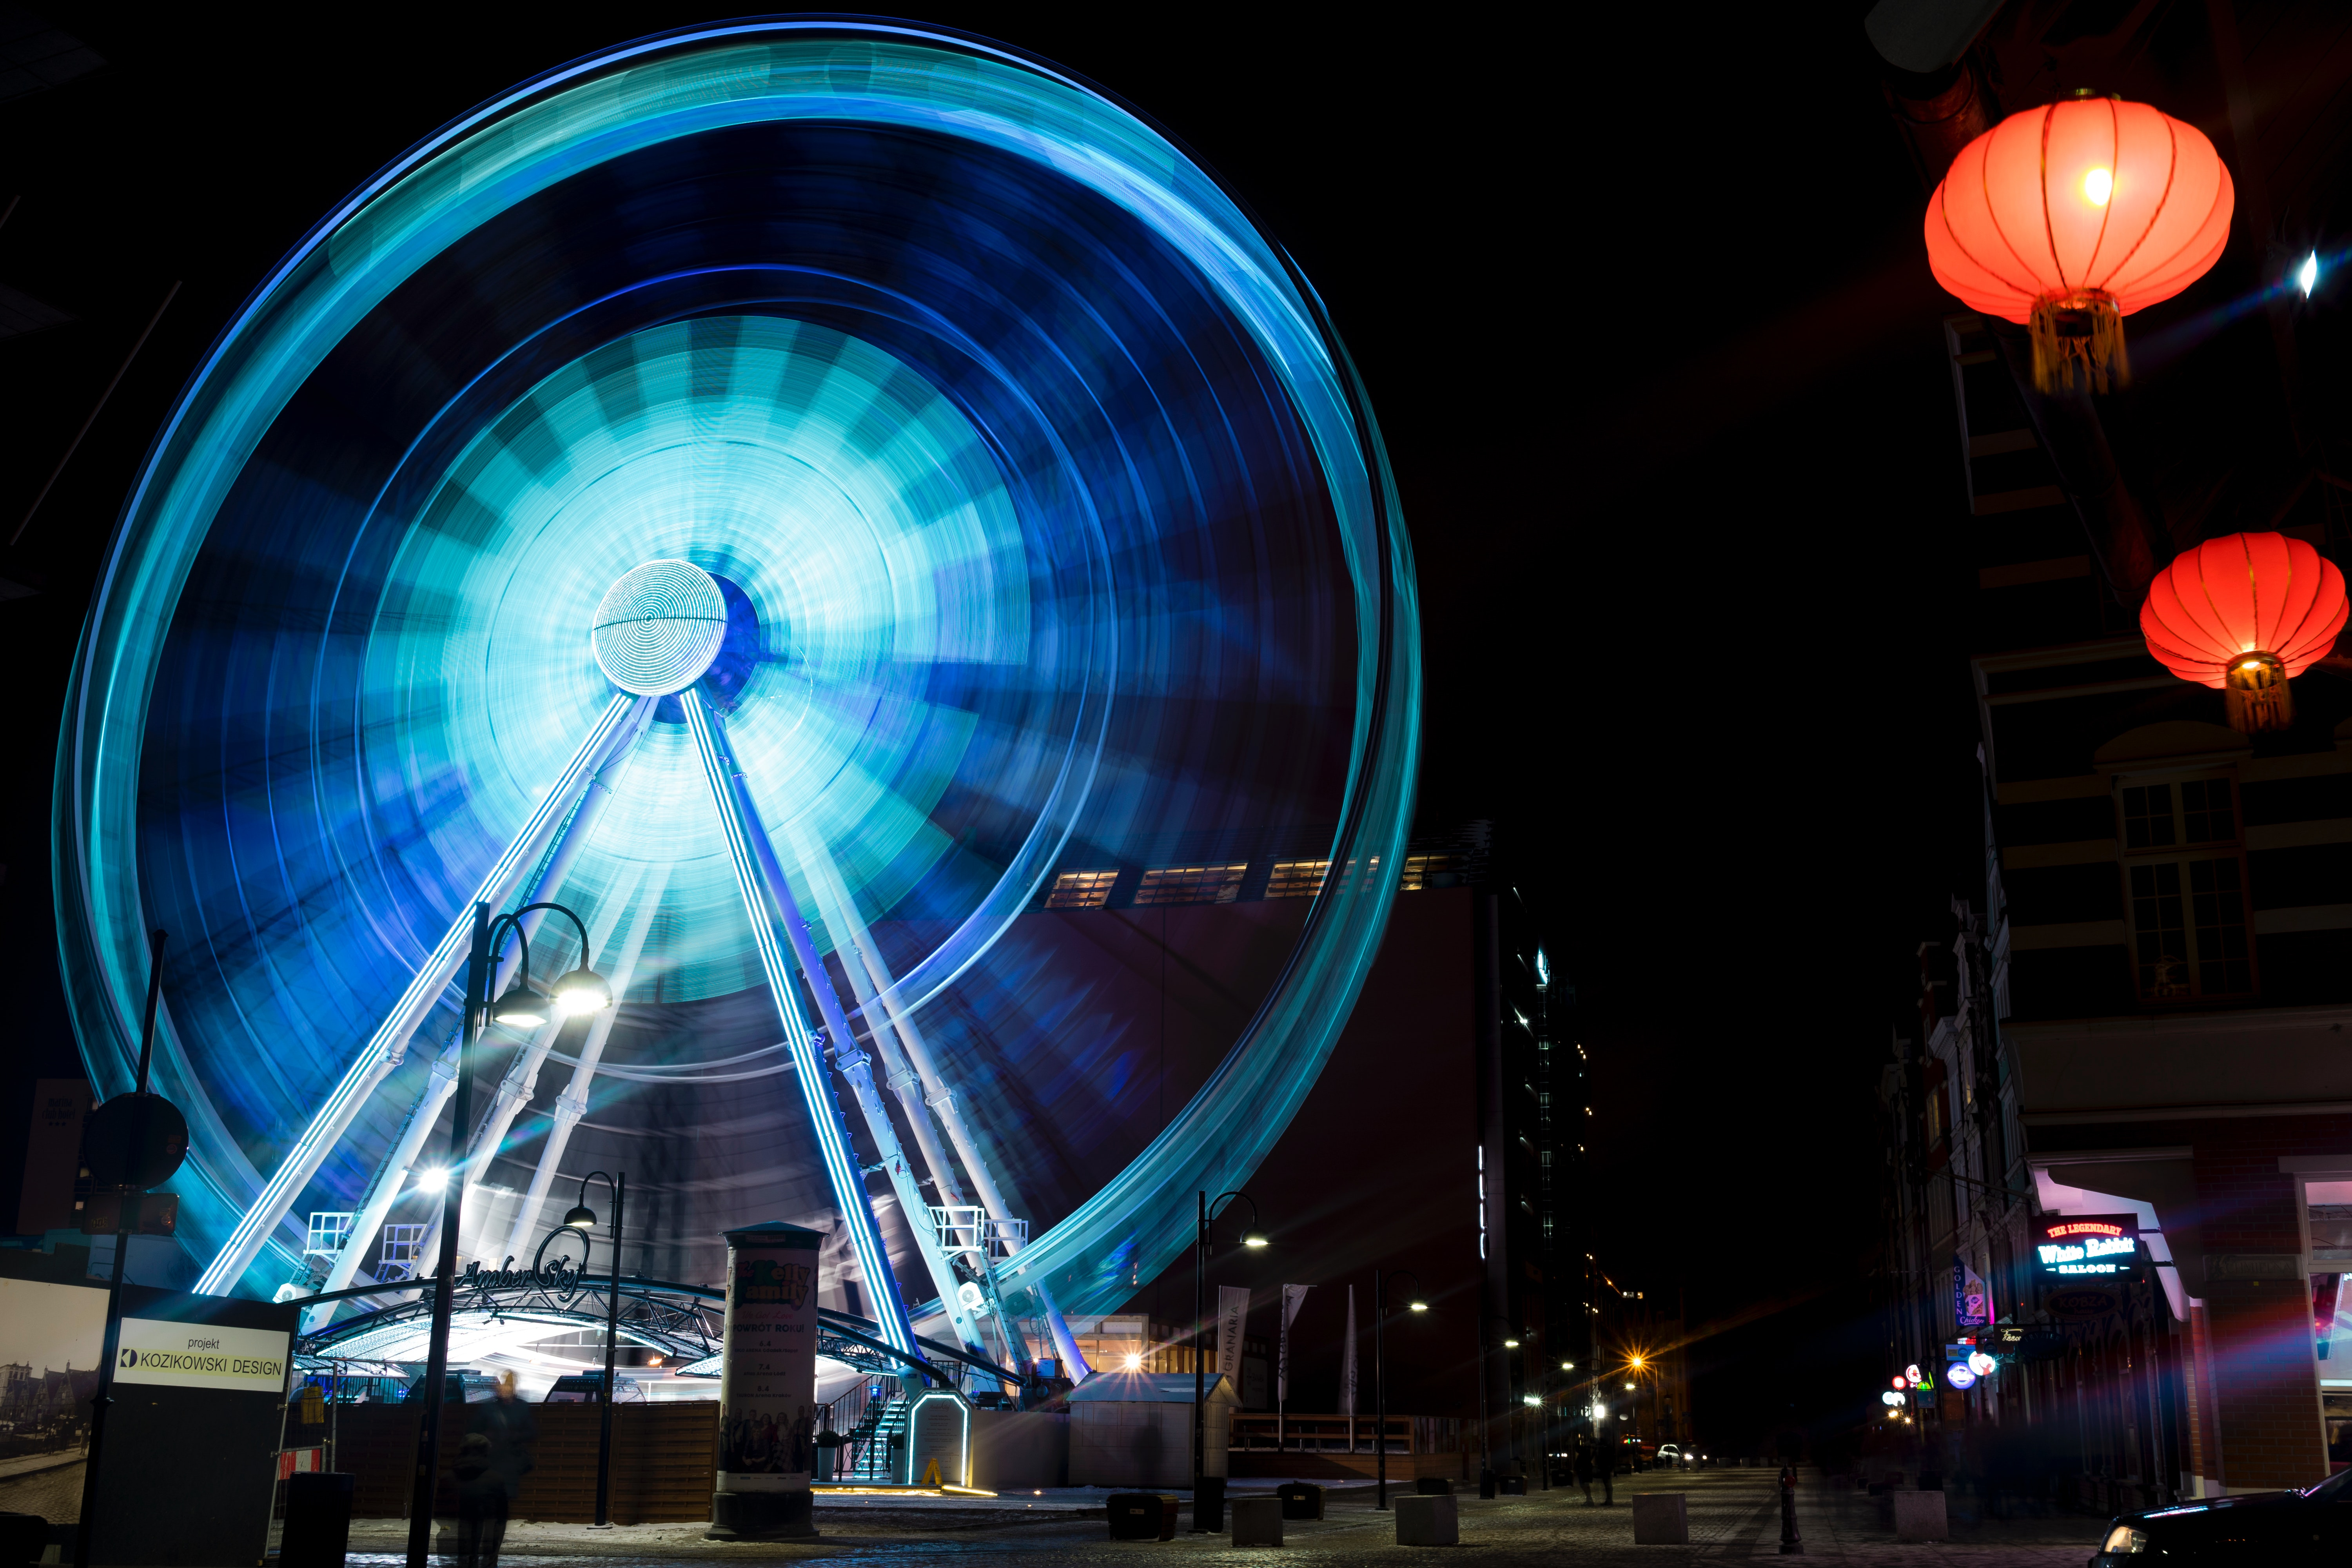 Time lapse photography of blue lighted ferries wheel